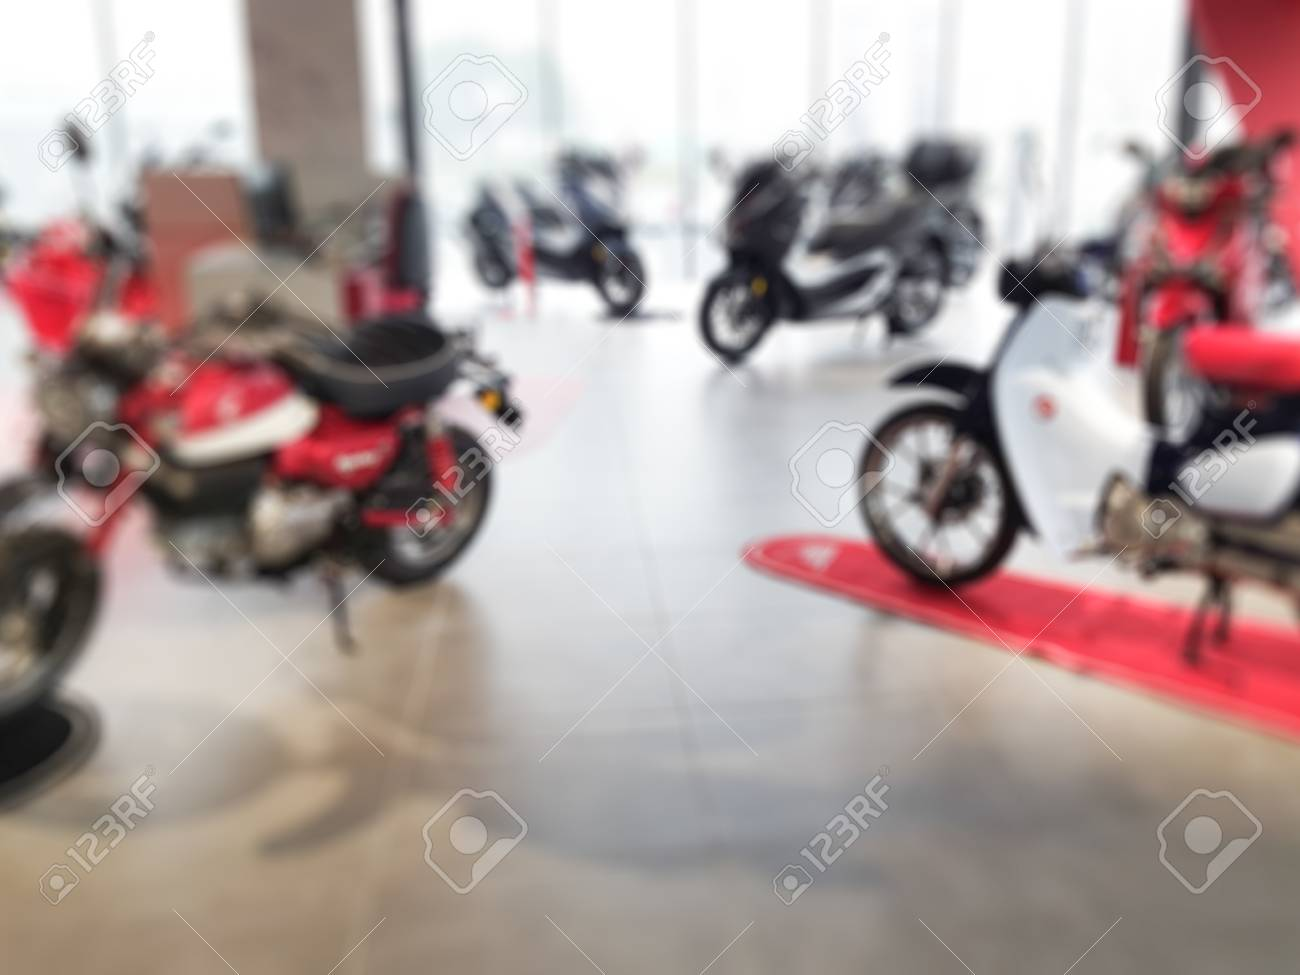 blurry shop motorcycle with moped scooter for sale - 113935805